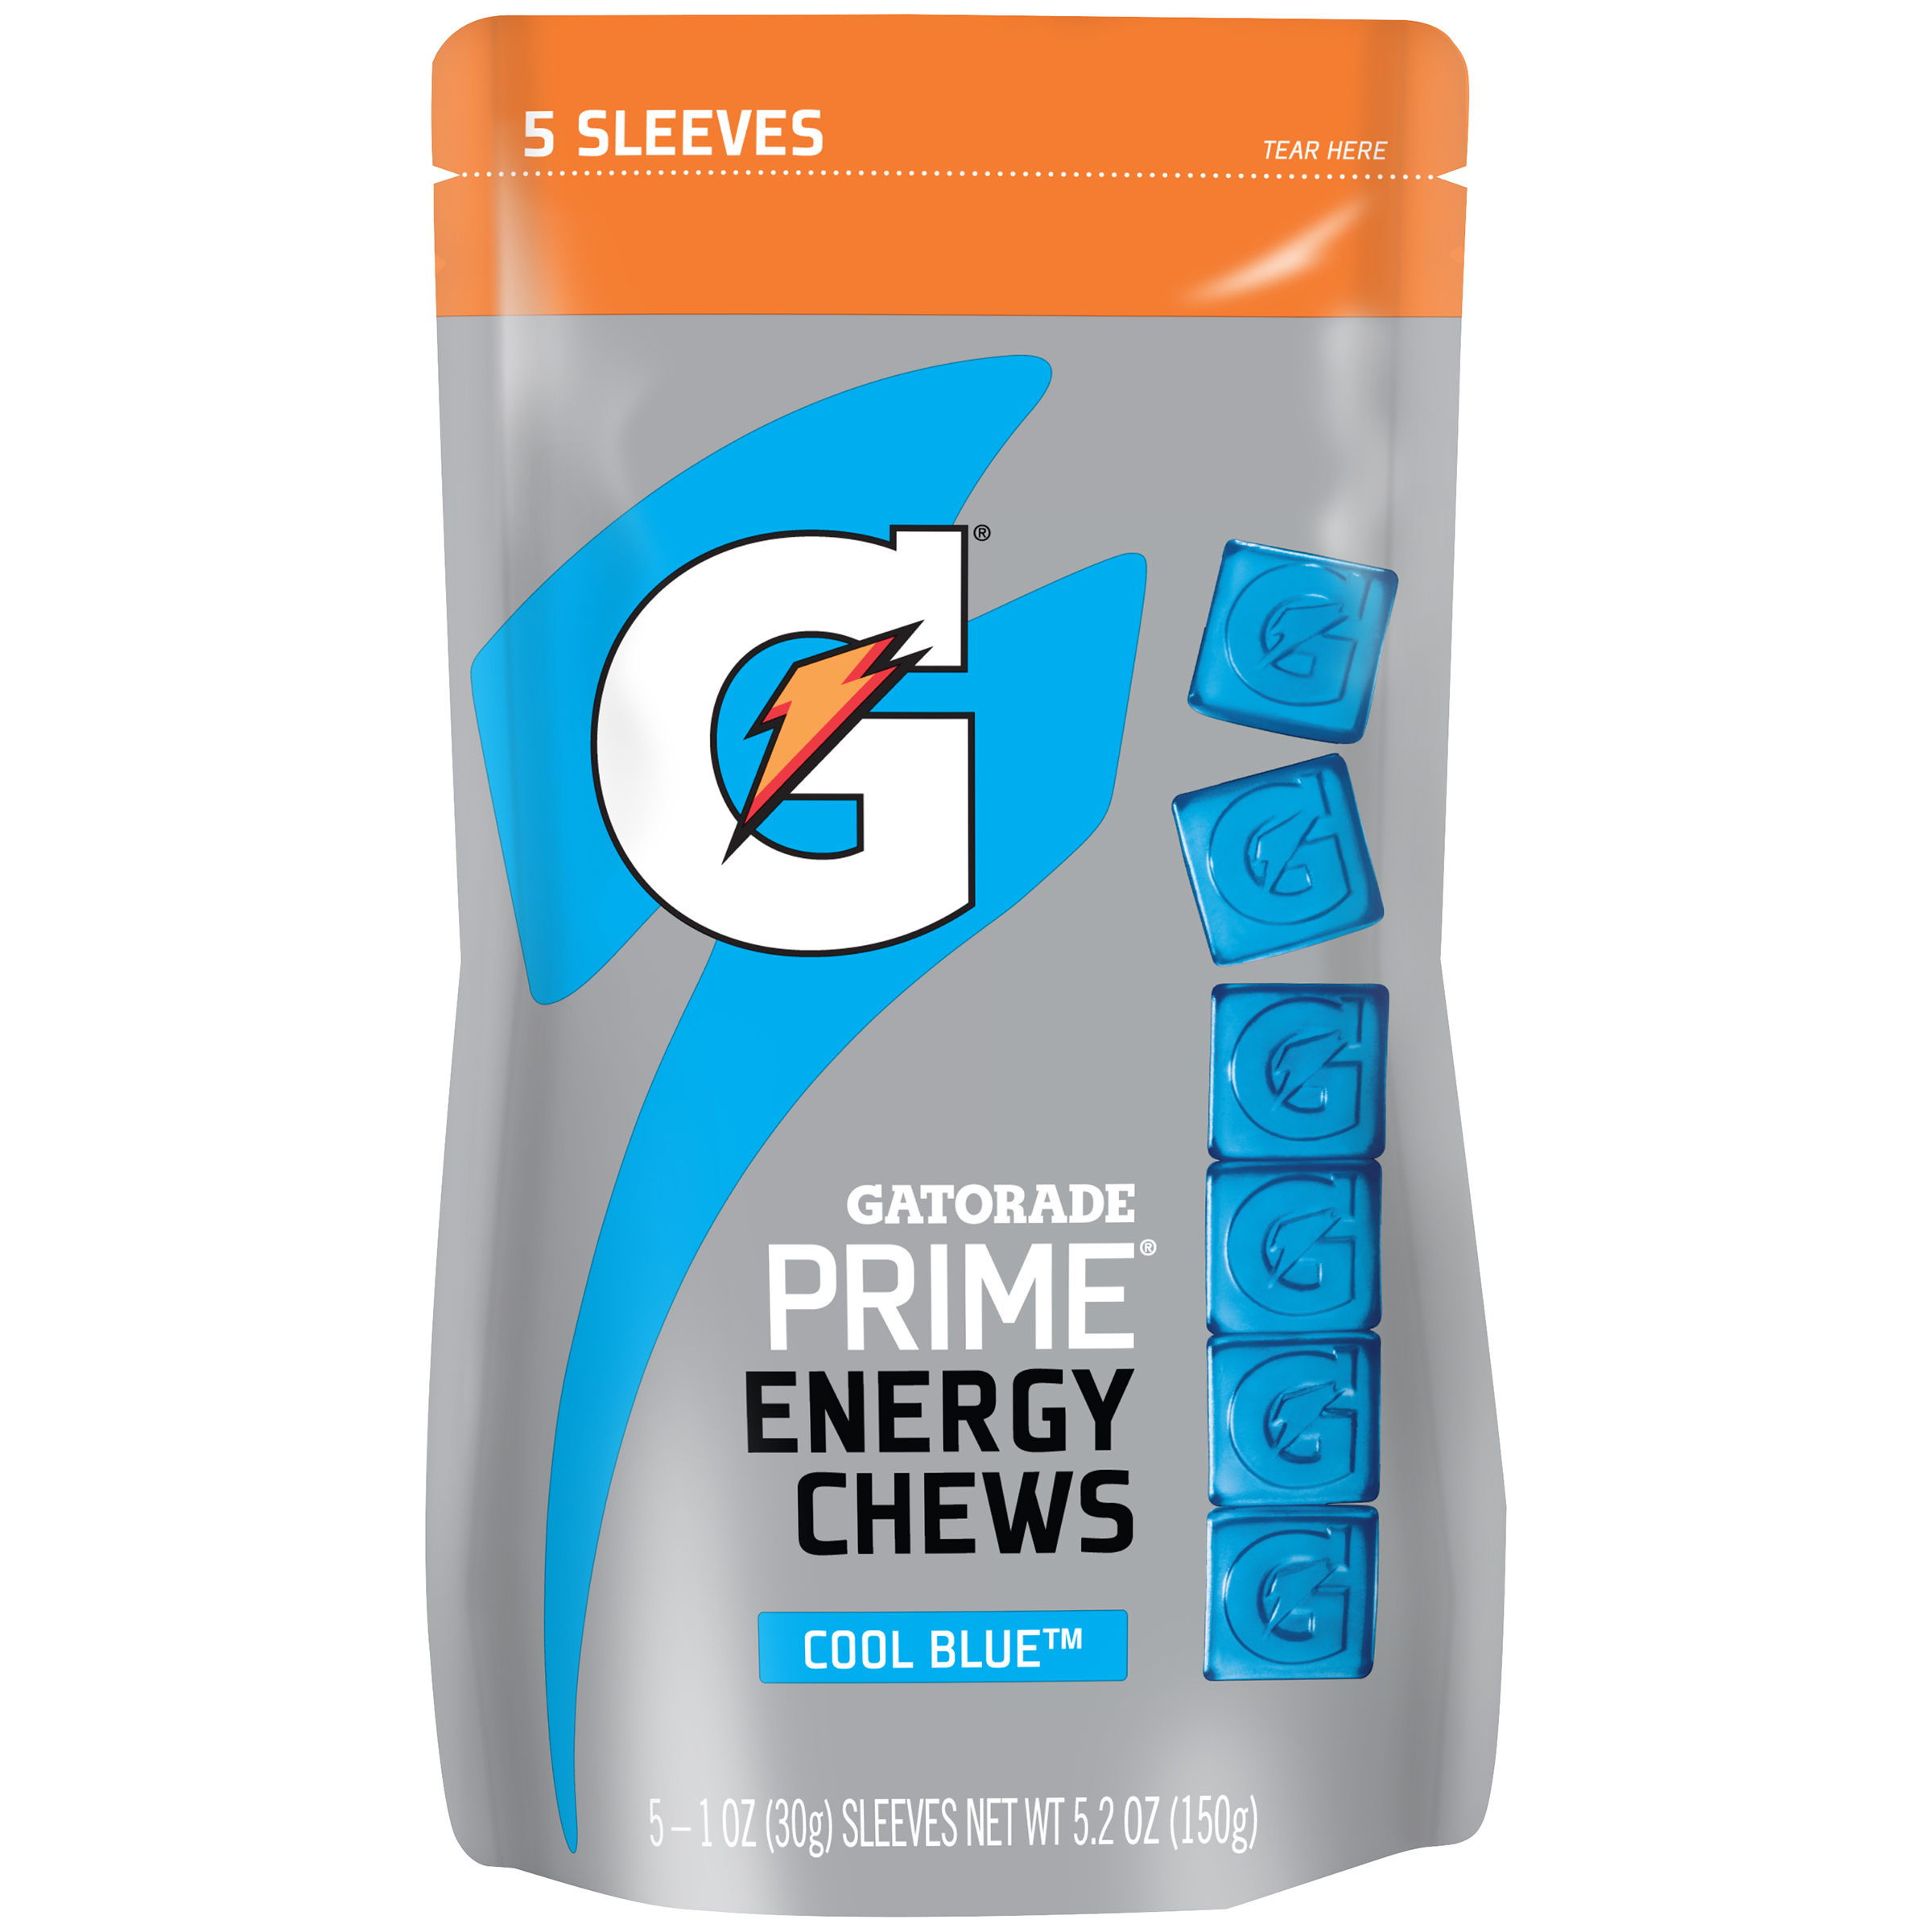 Gatorade Prime Energy Chews, Cool Blue, 1 oz Sleeves, 5 Count